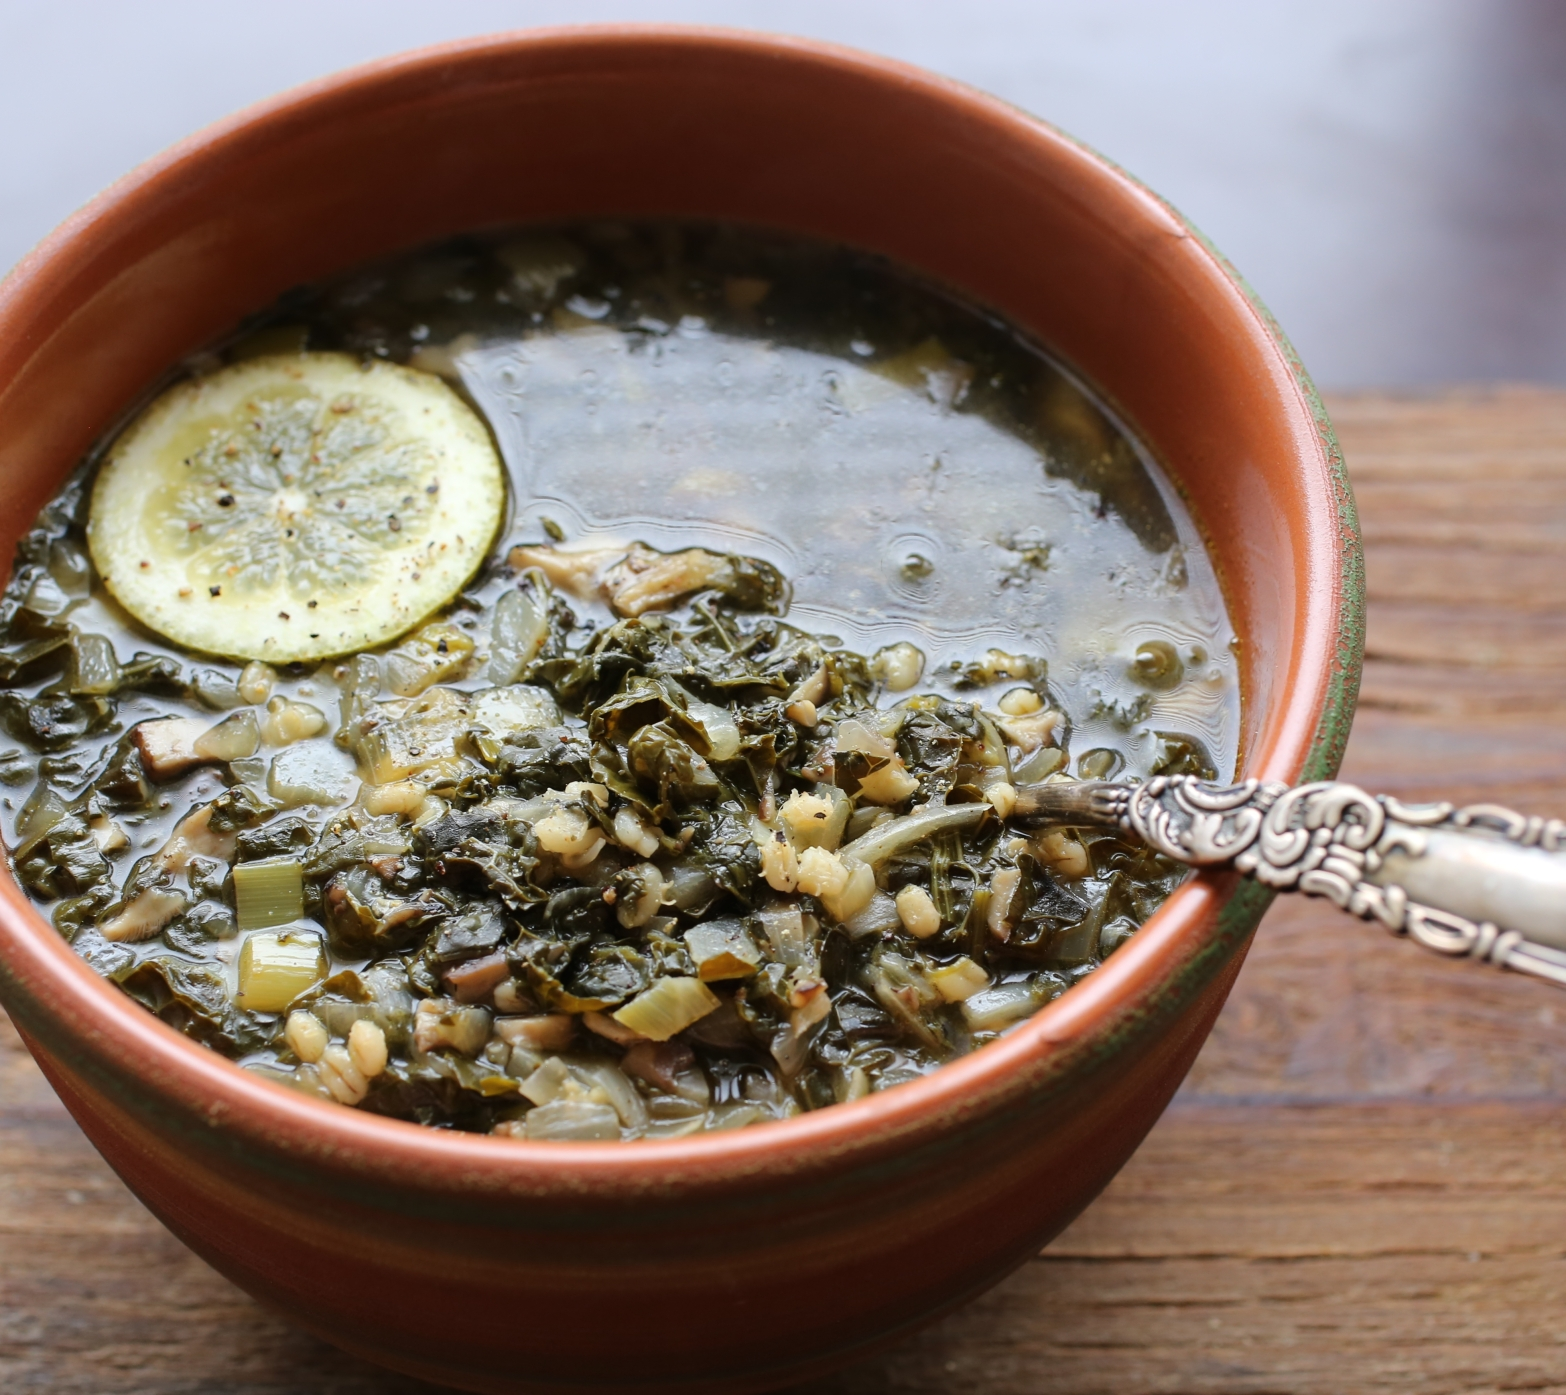 Green Soup with Mushrooms